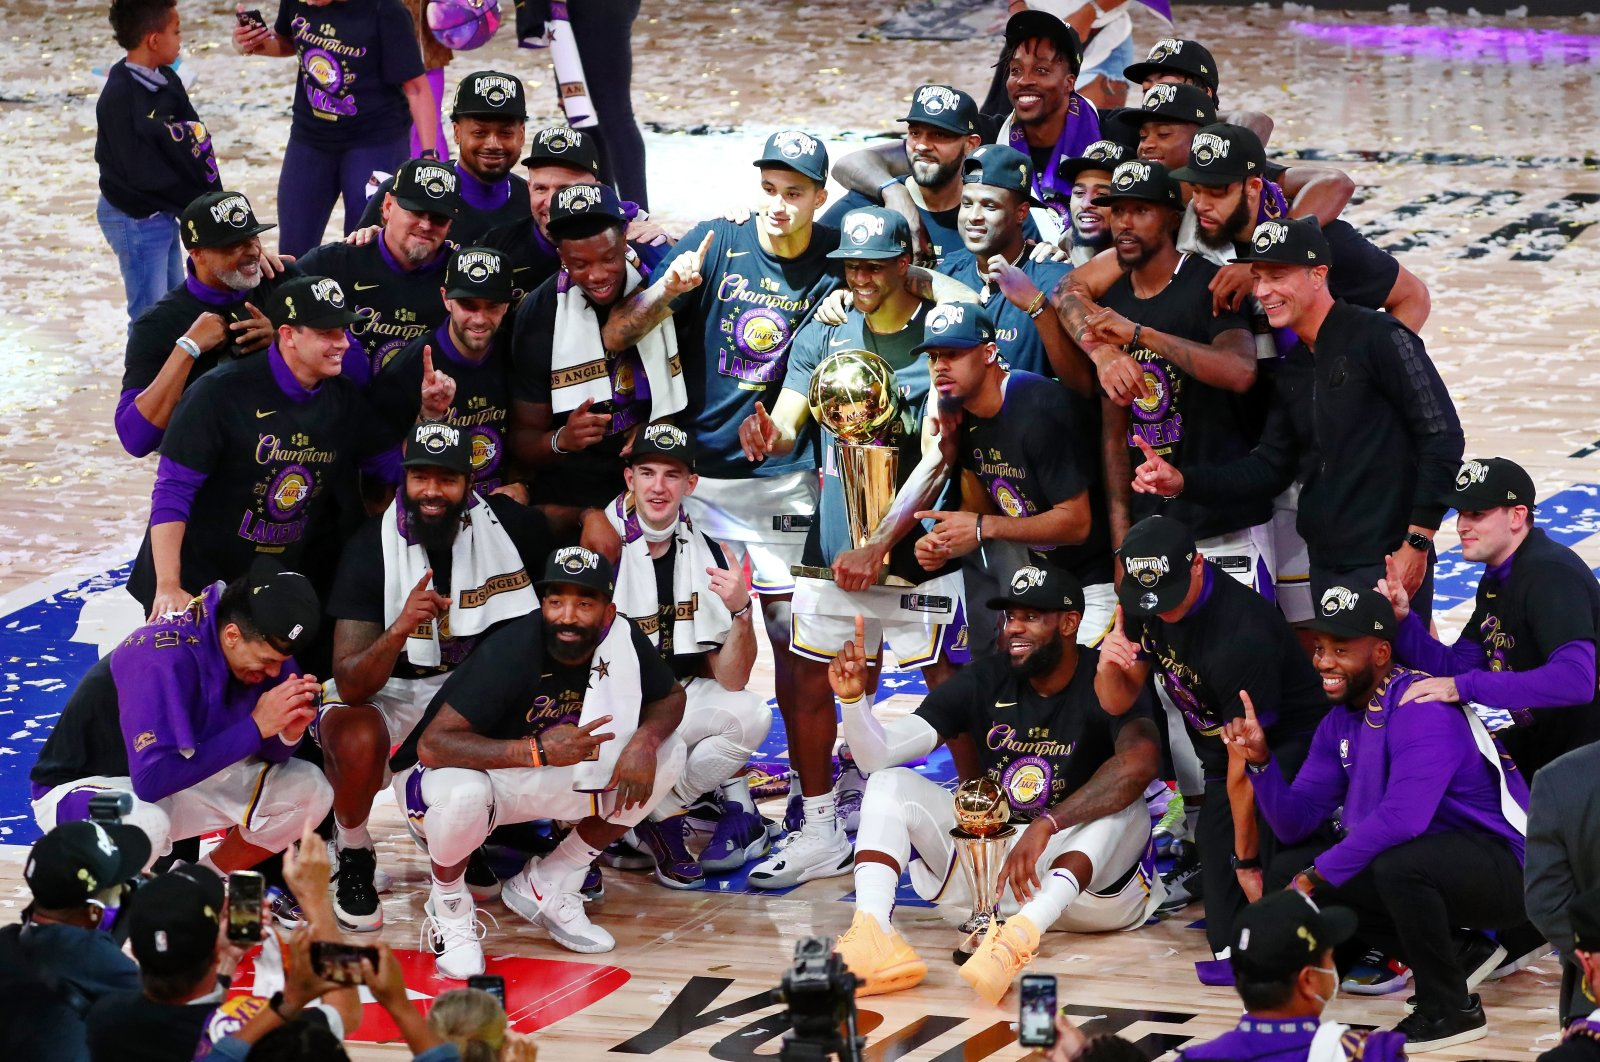 Los Angeles Lakers pose for a photo as they celebrate winning the NBA championship after defeating Miami Heat in Game 6, in Lake Buena Vista, Florida, U.S., Oct. 11, 2020. (Reuters Photo)